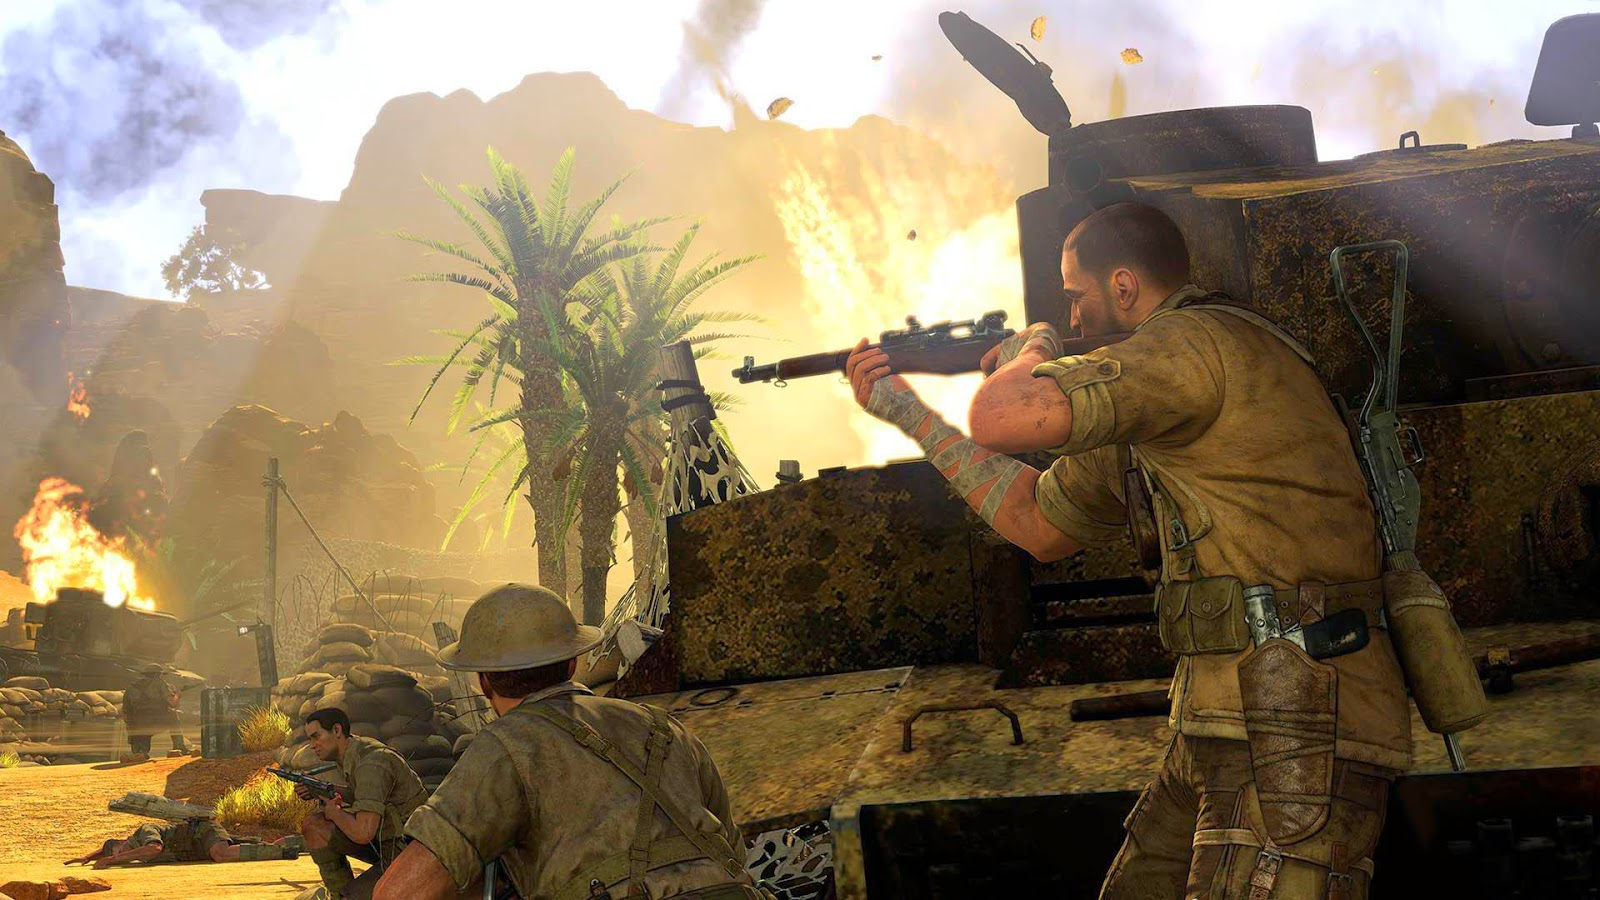 Best 47 Sniper Elite III Wallpaper on HipWallpaper Elite 1600x900